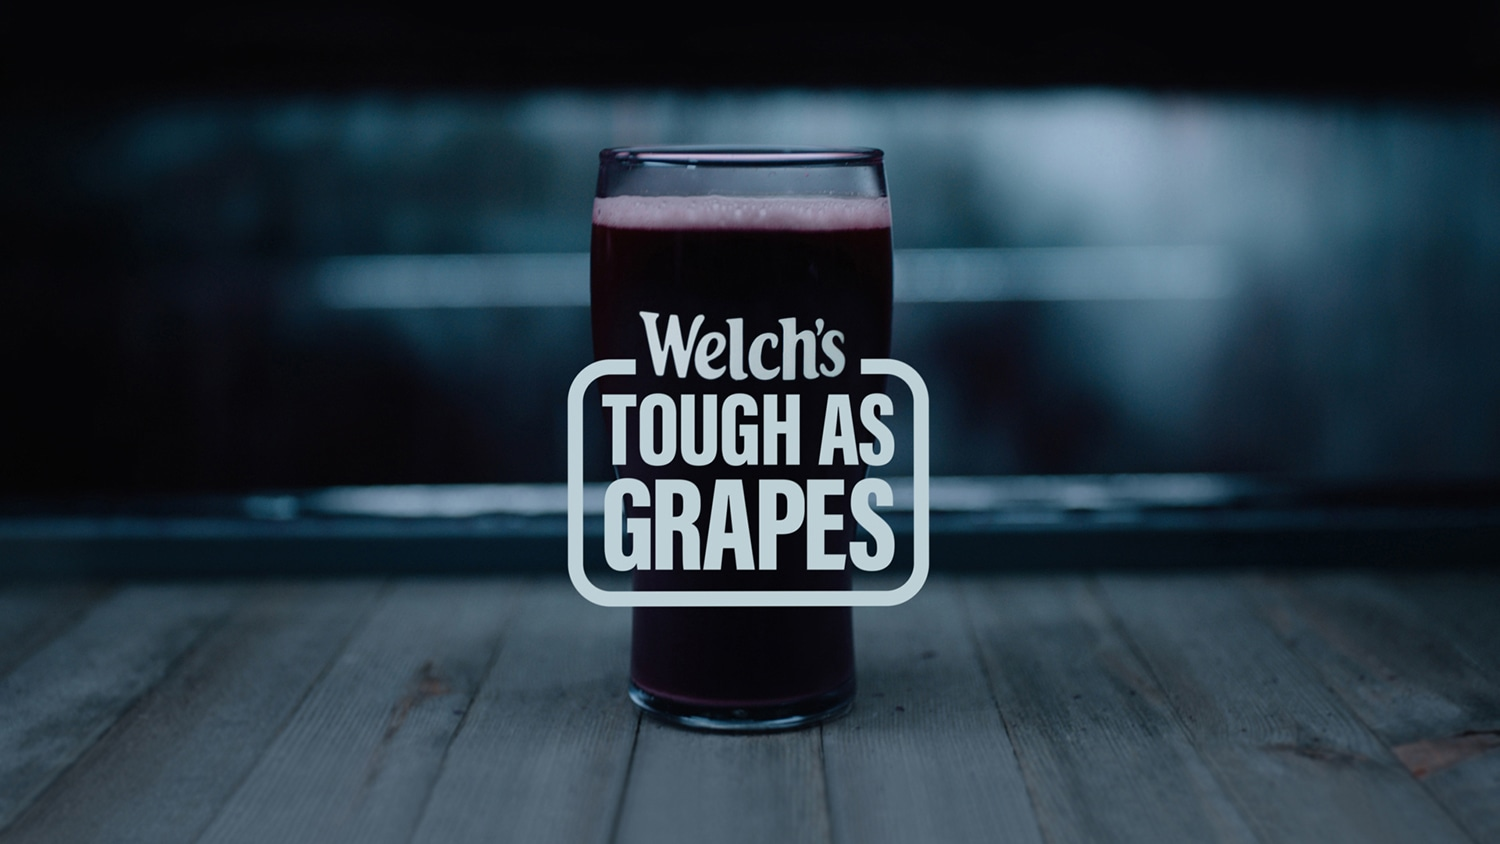 Welch's Tough as Grapes Anthem